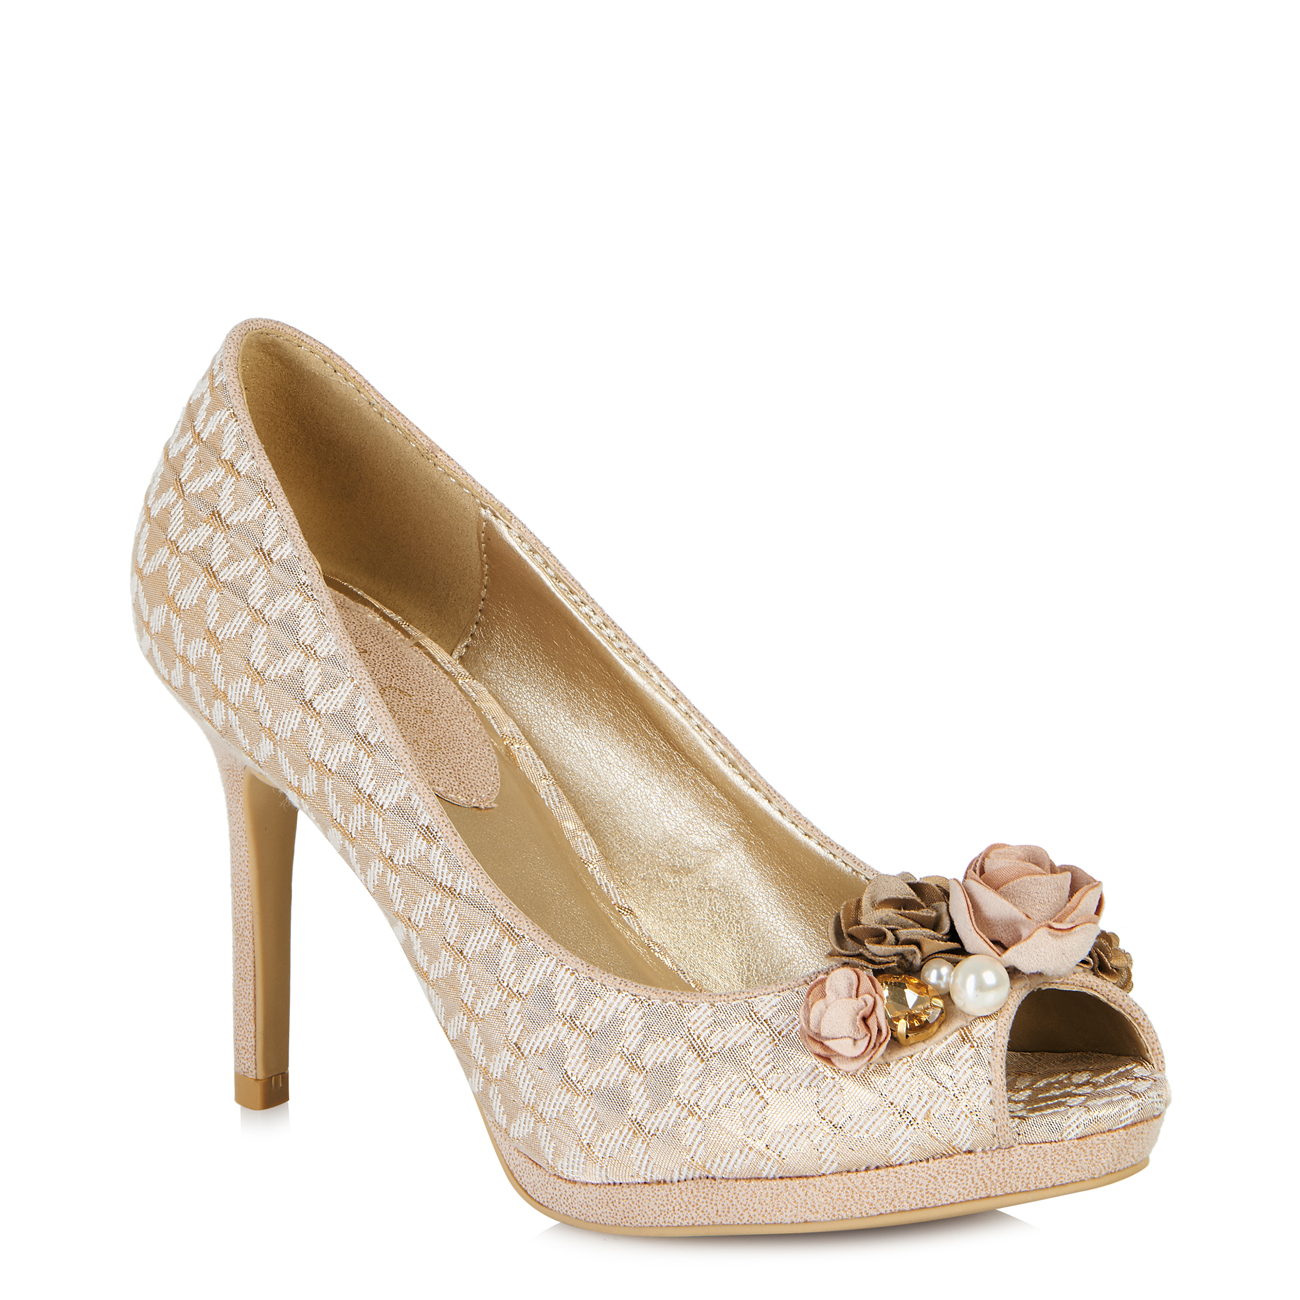 Ruby Shoo Sonia Jewelled Peeptoe Shoe Silver Rose Gold ...